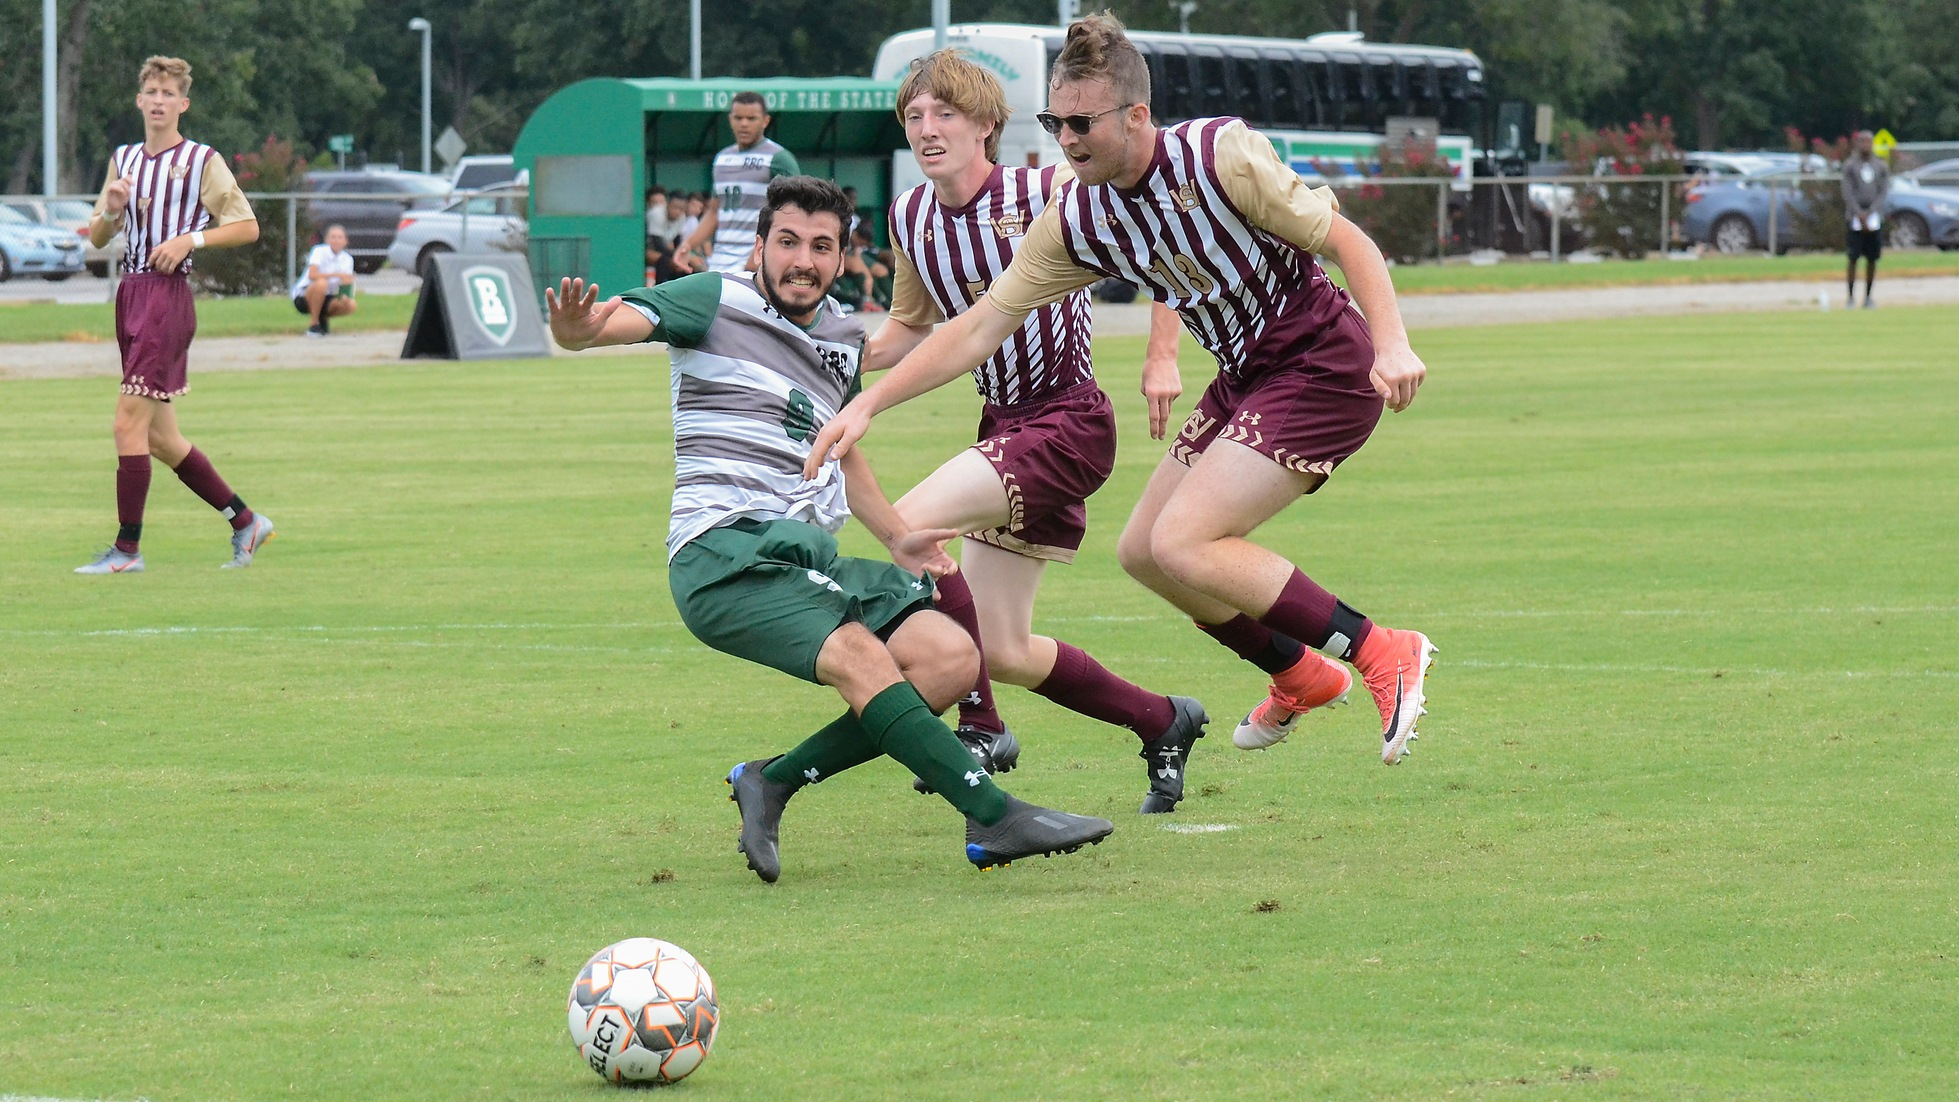 Early Lead Sets up Victory for Men's Soccer